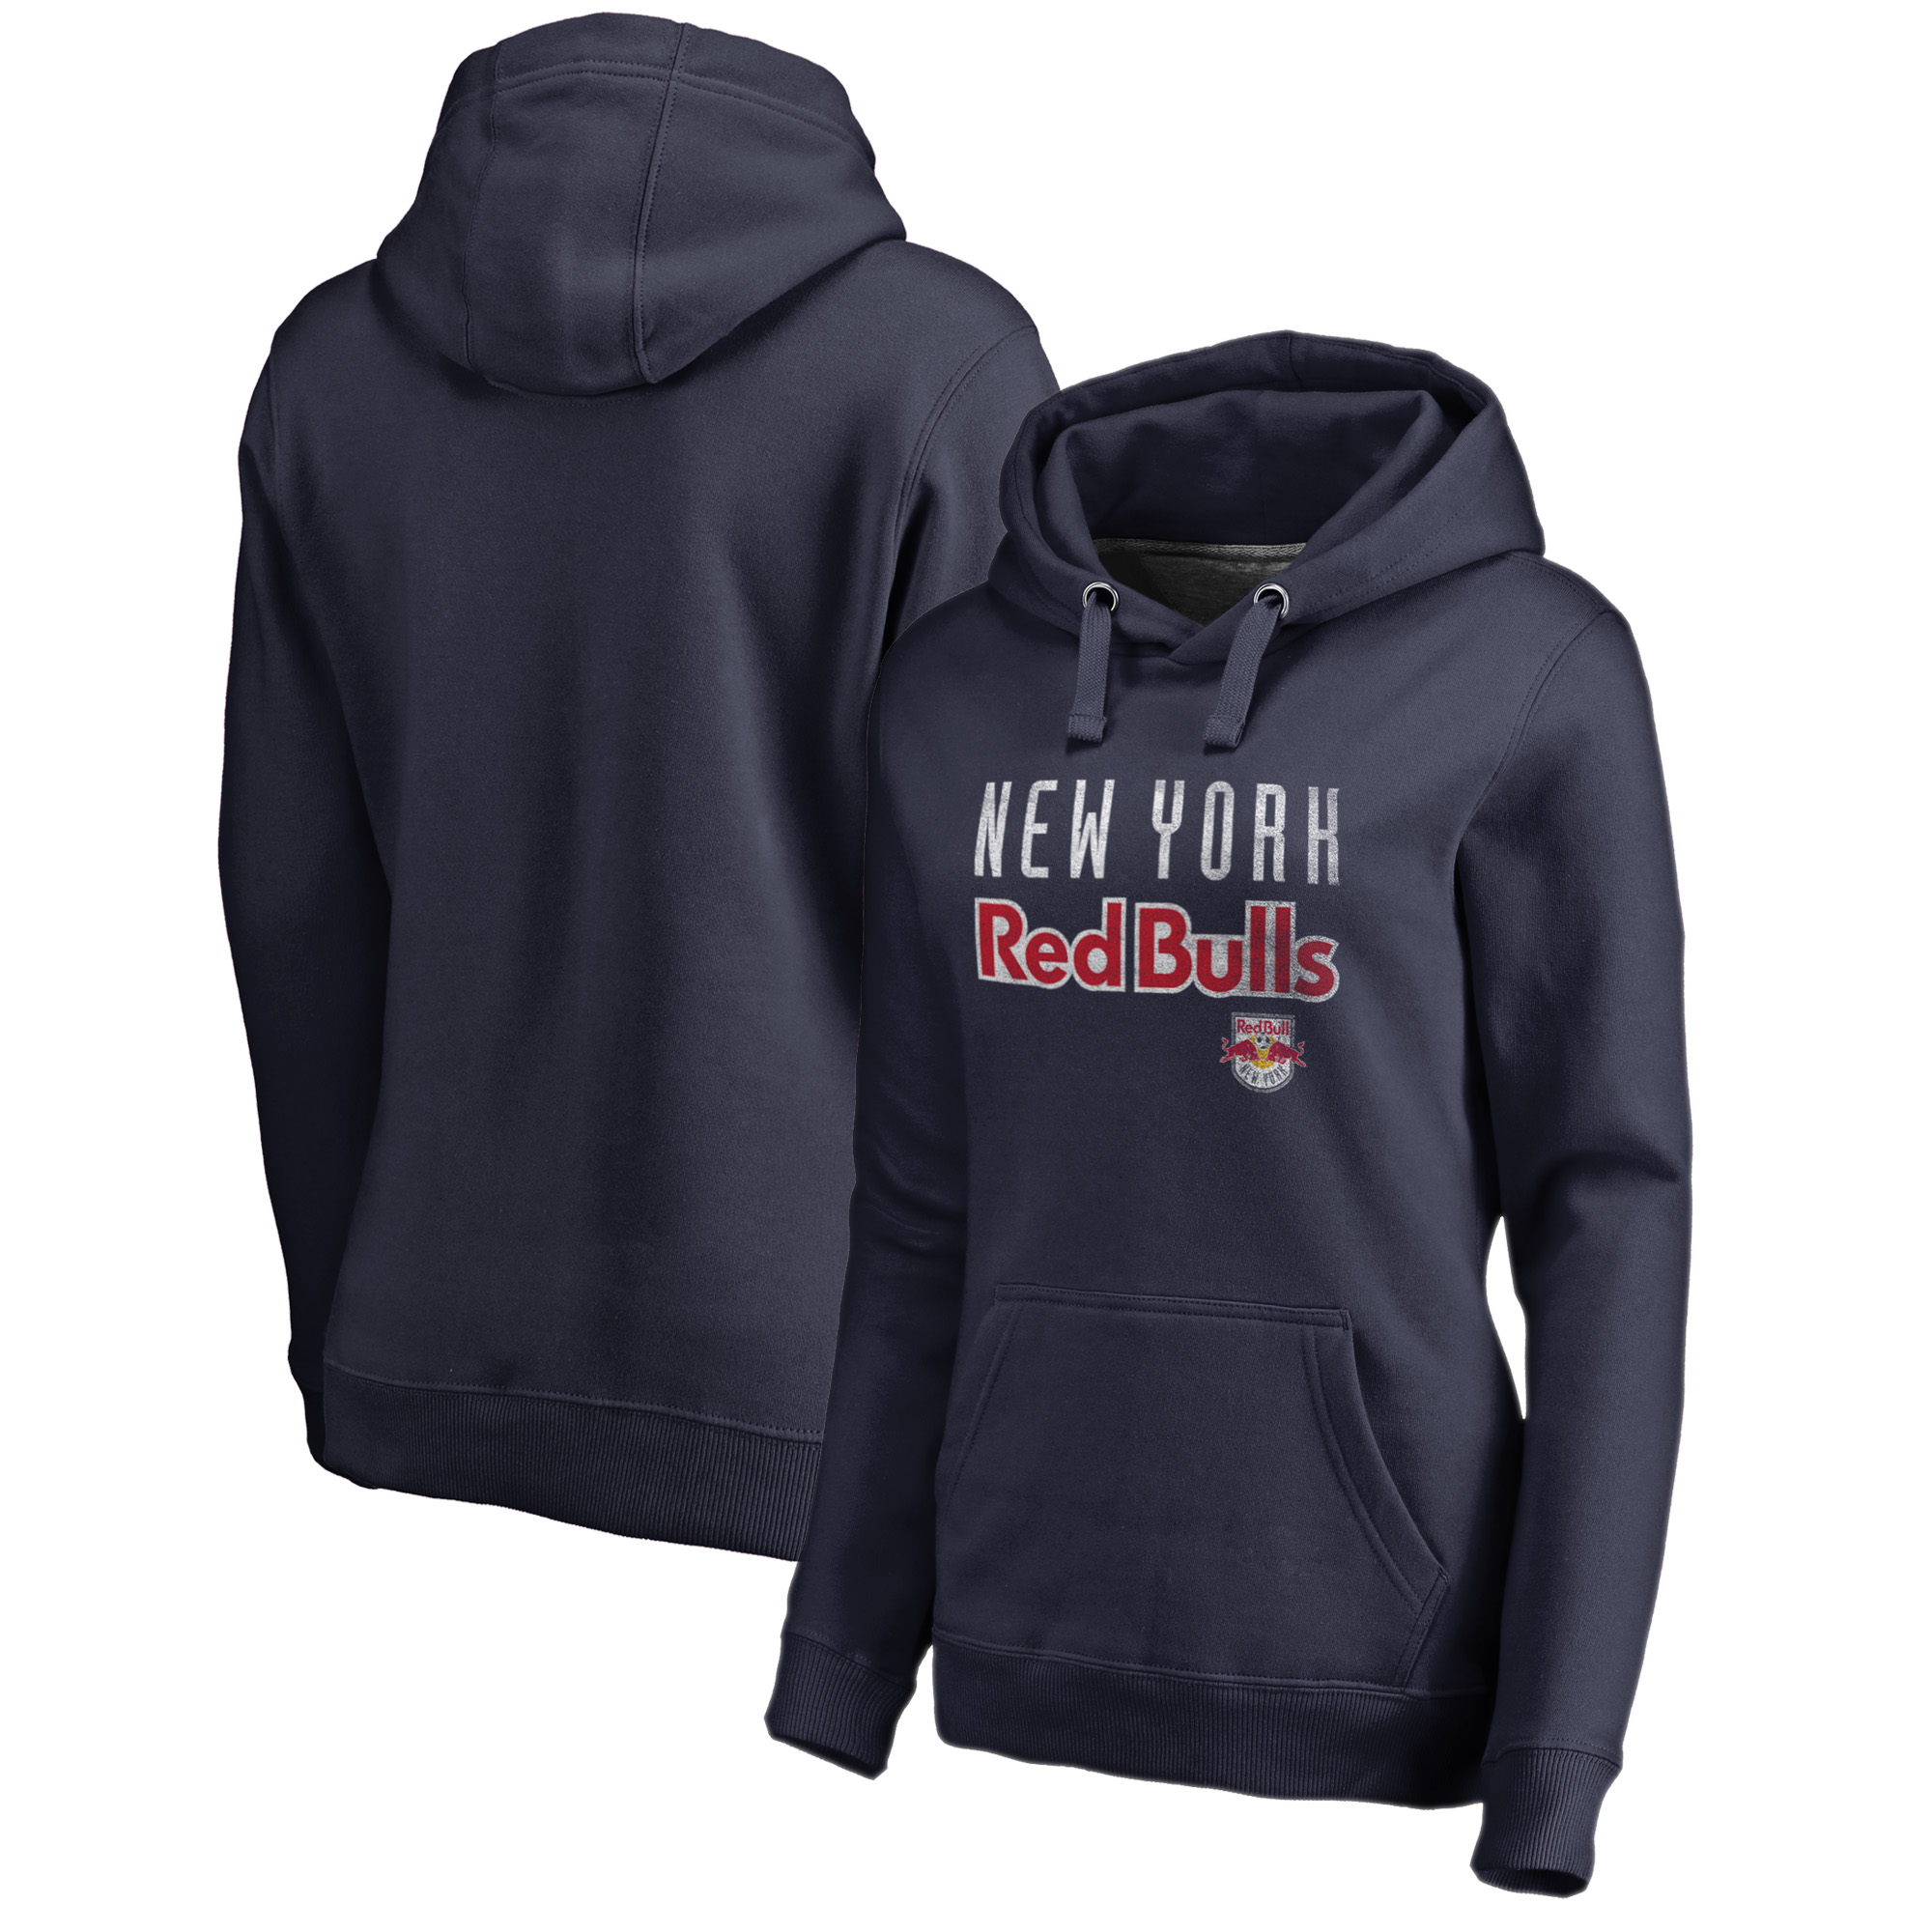 New York Red Bulls Fanatics Branded Women's Graceful Plus Size Pullover Hoodie - Navy